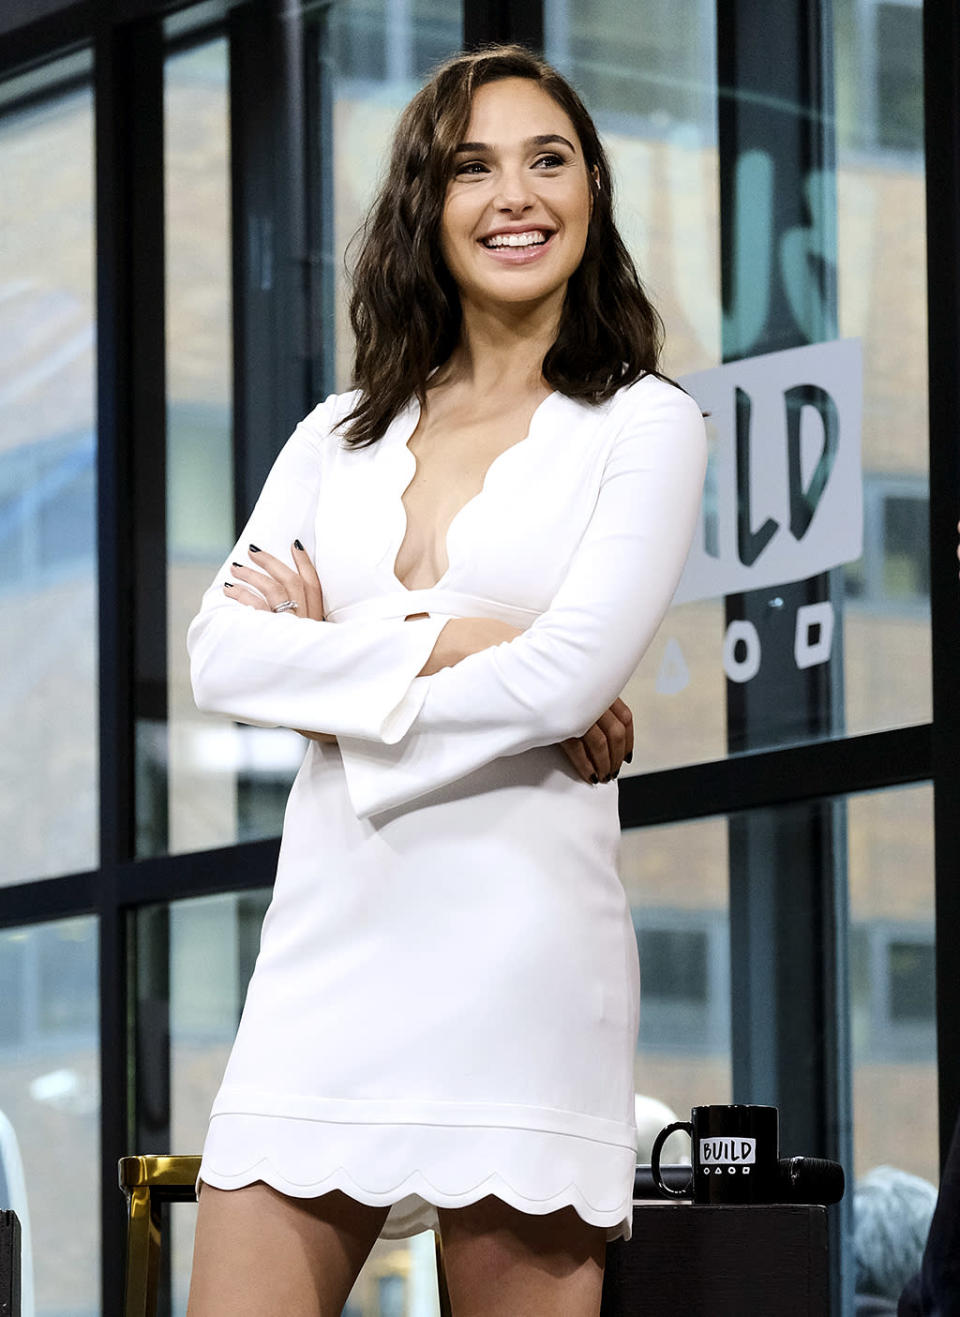 <p>Gadot rocked a white, above-the-knee design from A.L.C., with a plunging neckline and scalloped edges, to AOL's Build Studios NYC. Her black manicure added a funky vibe. (Photo: Evan Agostini/Invision/AP) </p>